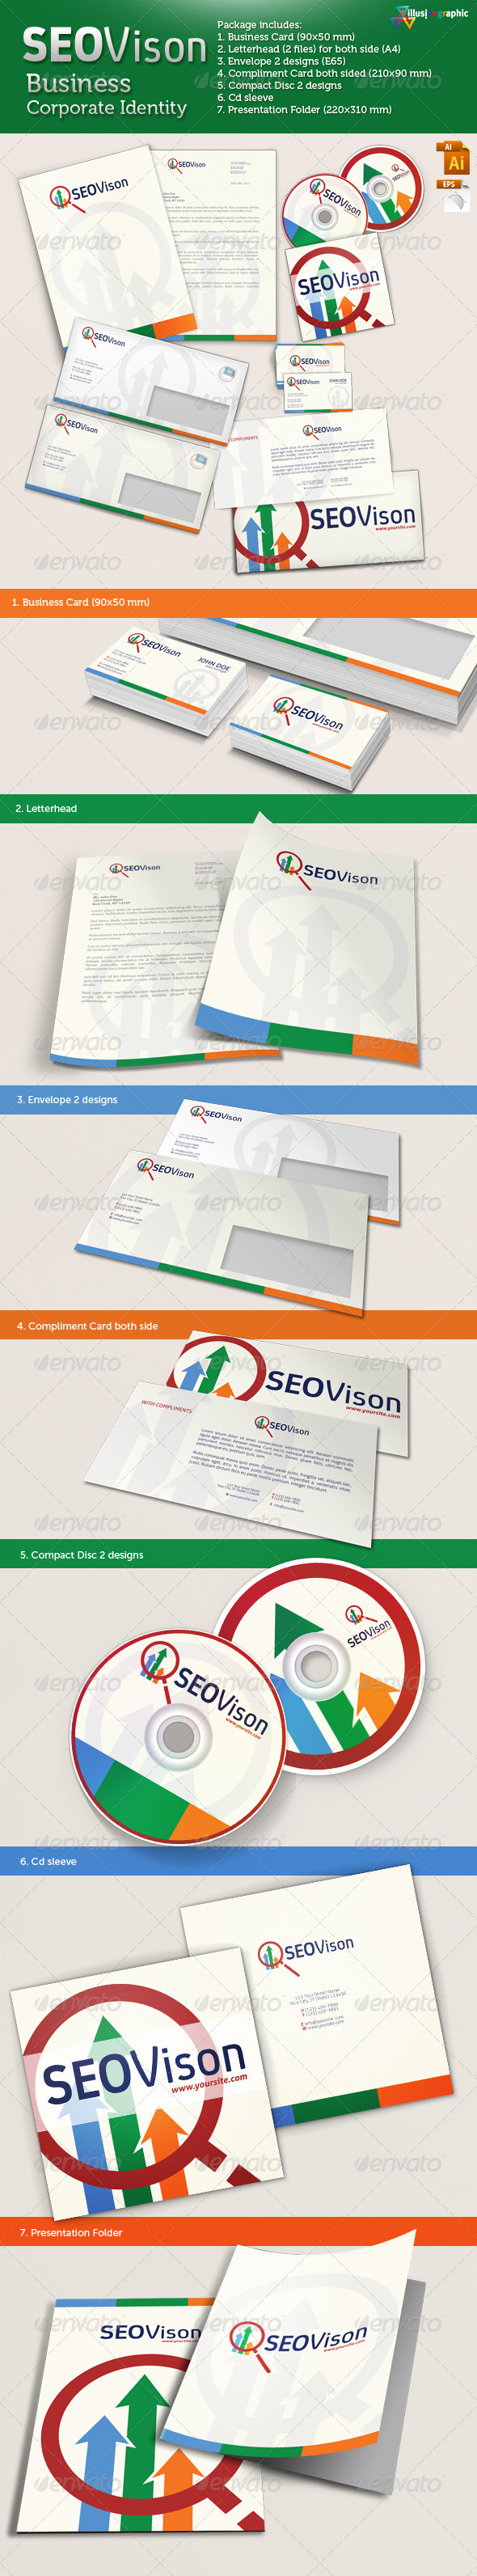 GraphicRiver SEOVison Business Corporate Identity 3519656